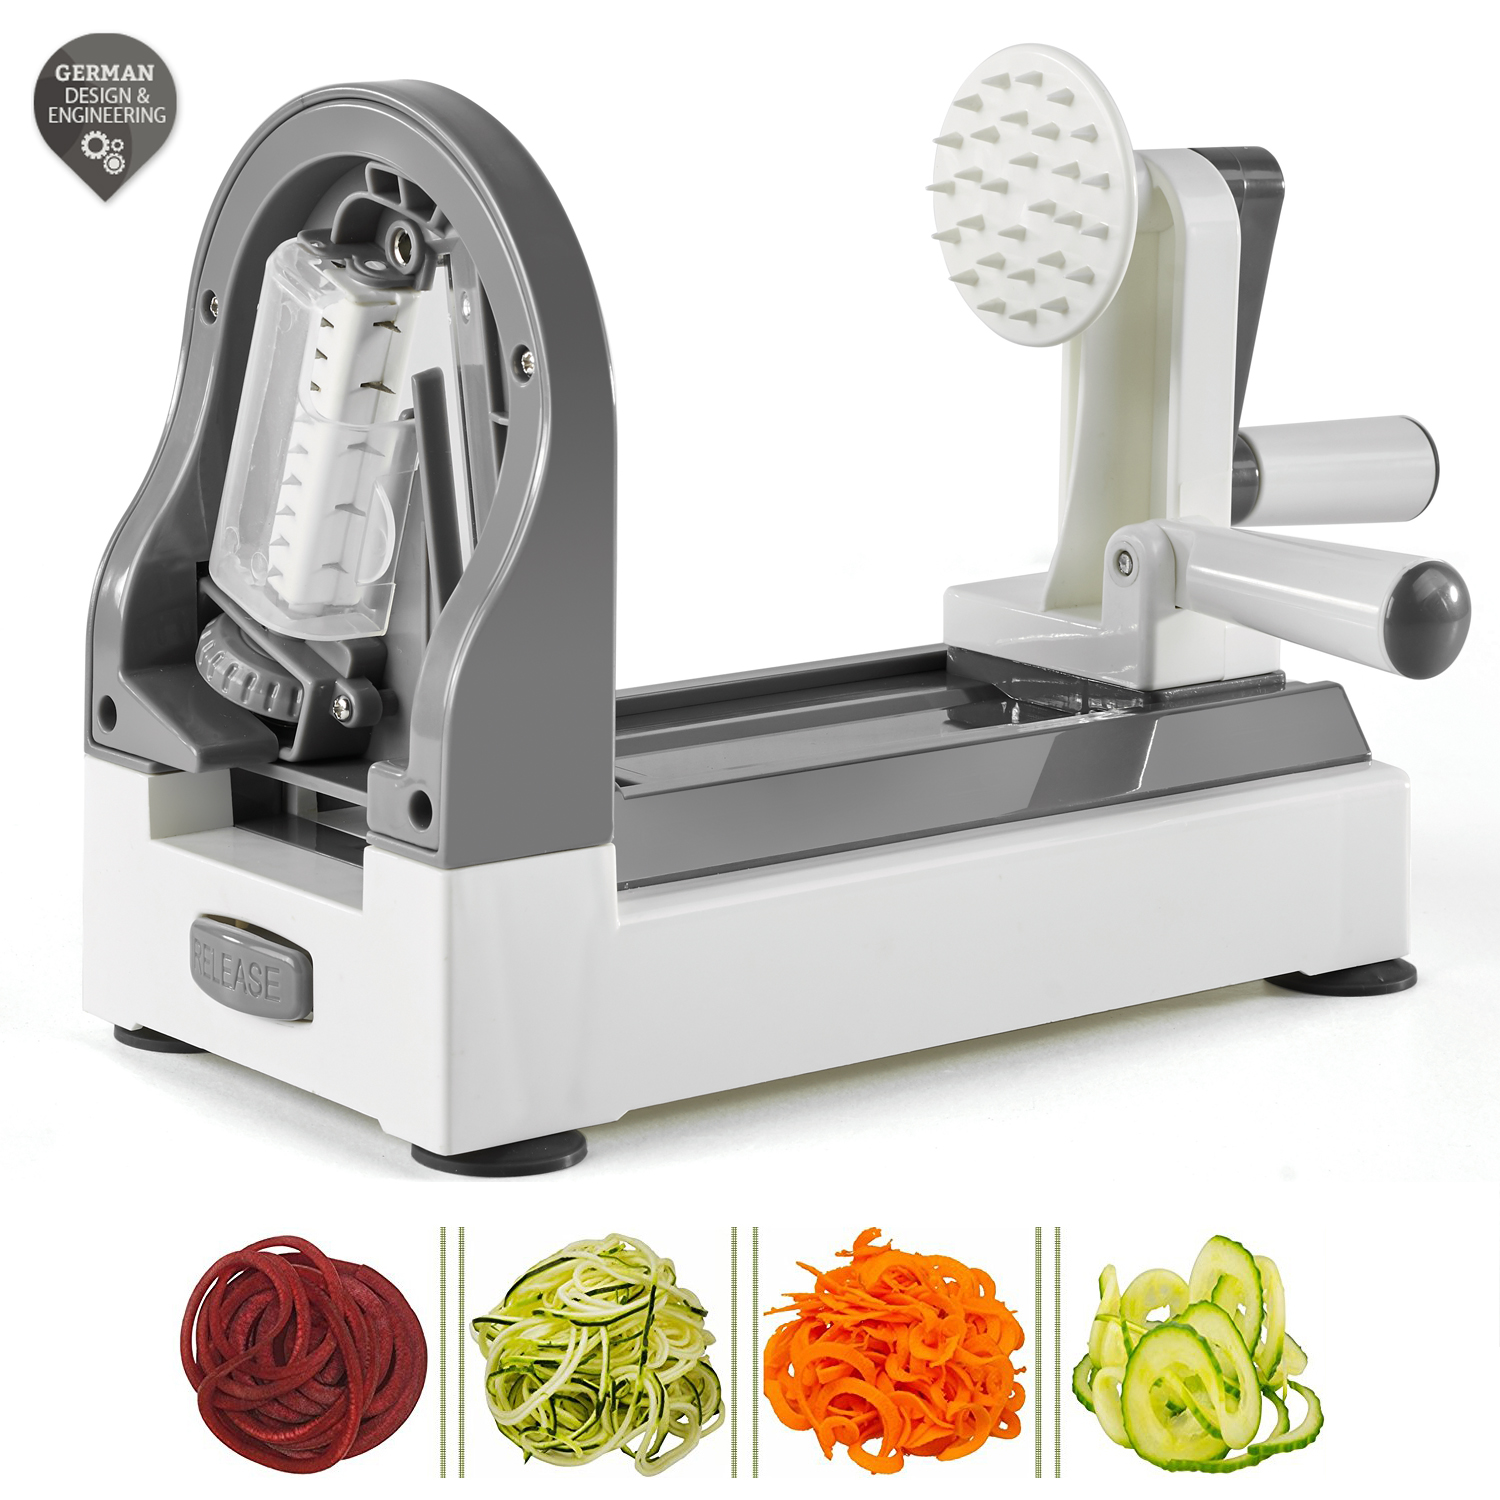 Spiralizer vegetable slicer Adjustable Spiral Slicer, Mandoline Julienne Easy-to-Use Super Heavy duty German Engineered Best Veggie, Fruits, Pasta Spaghetti Maker for Low Carb/Paleo/Gluten-Free Meals